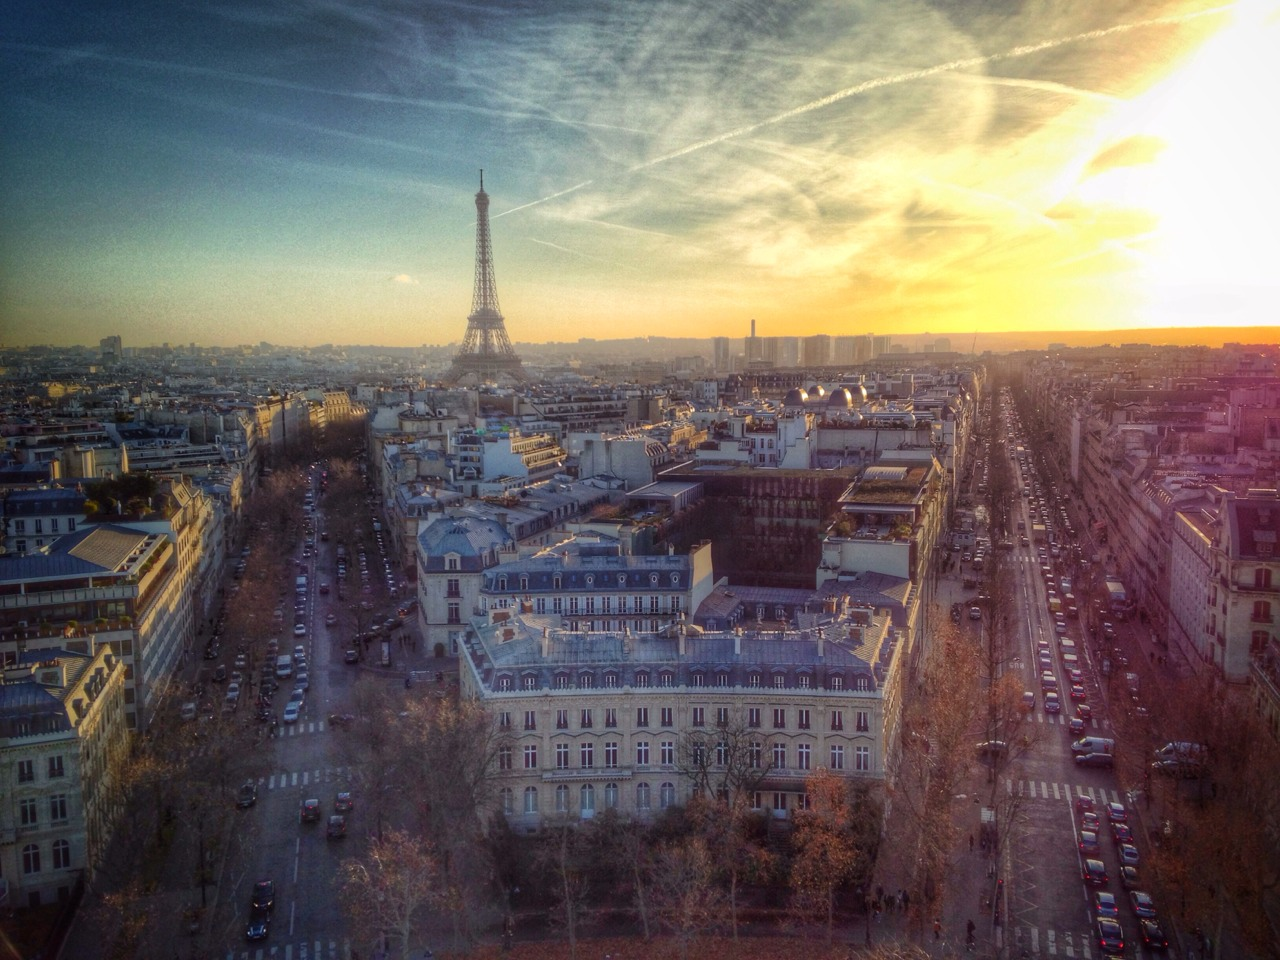 Top of the Arc de Triomphe at sunset